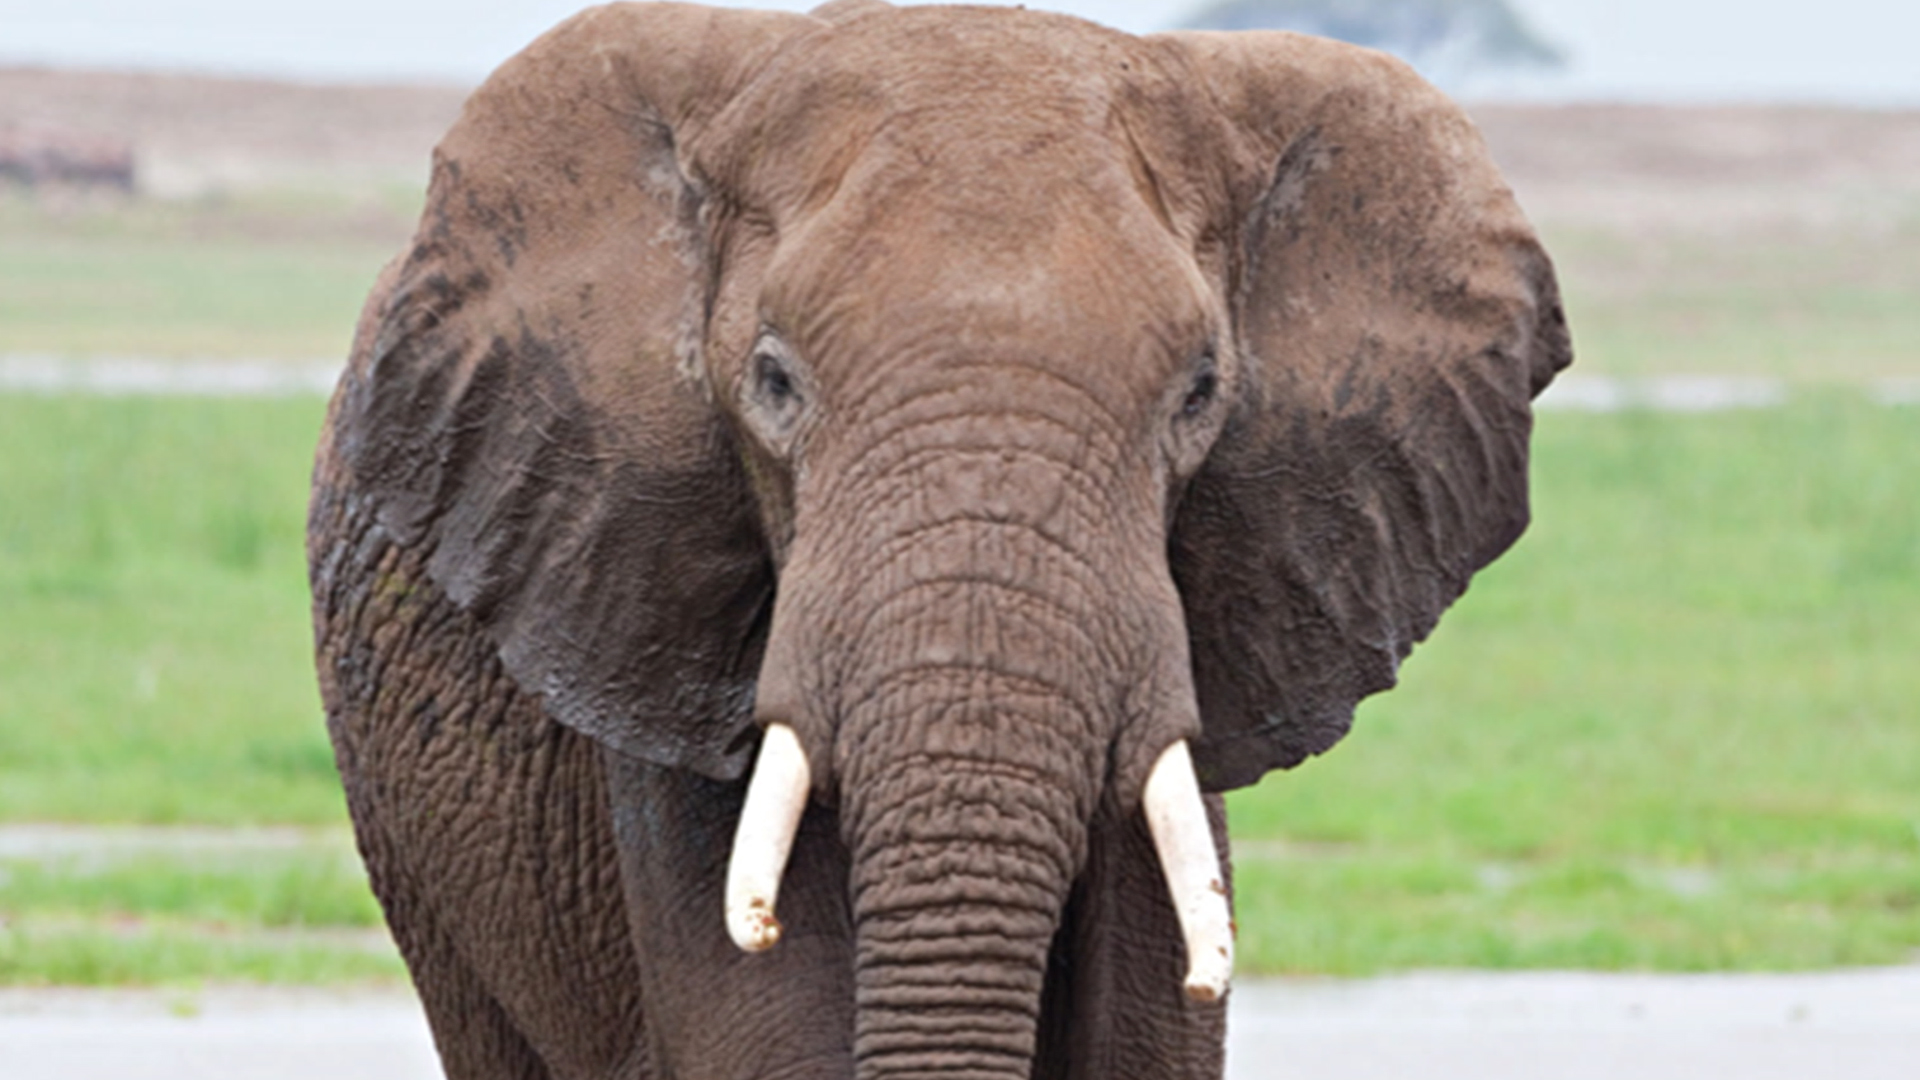 Twenty Thousand African Elephants Killed for Ivory in 2013: Report